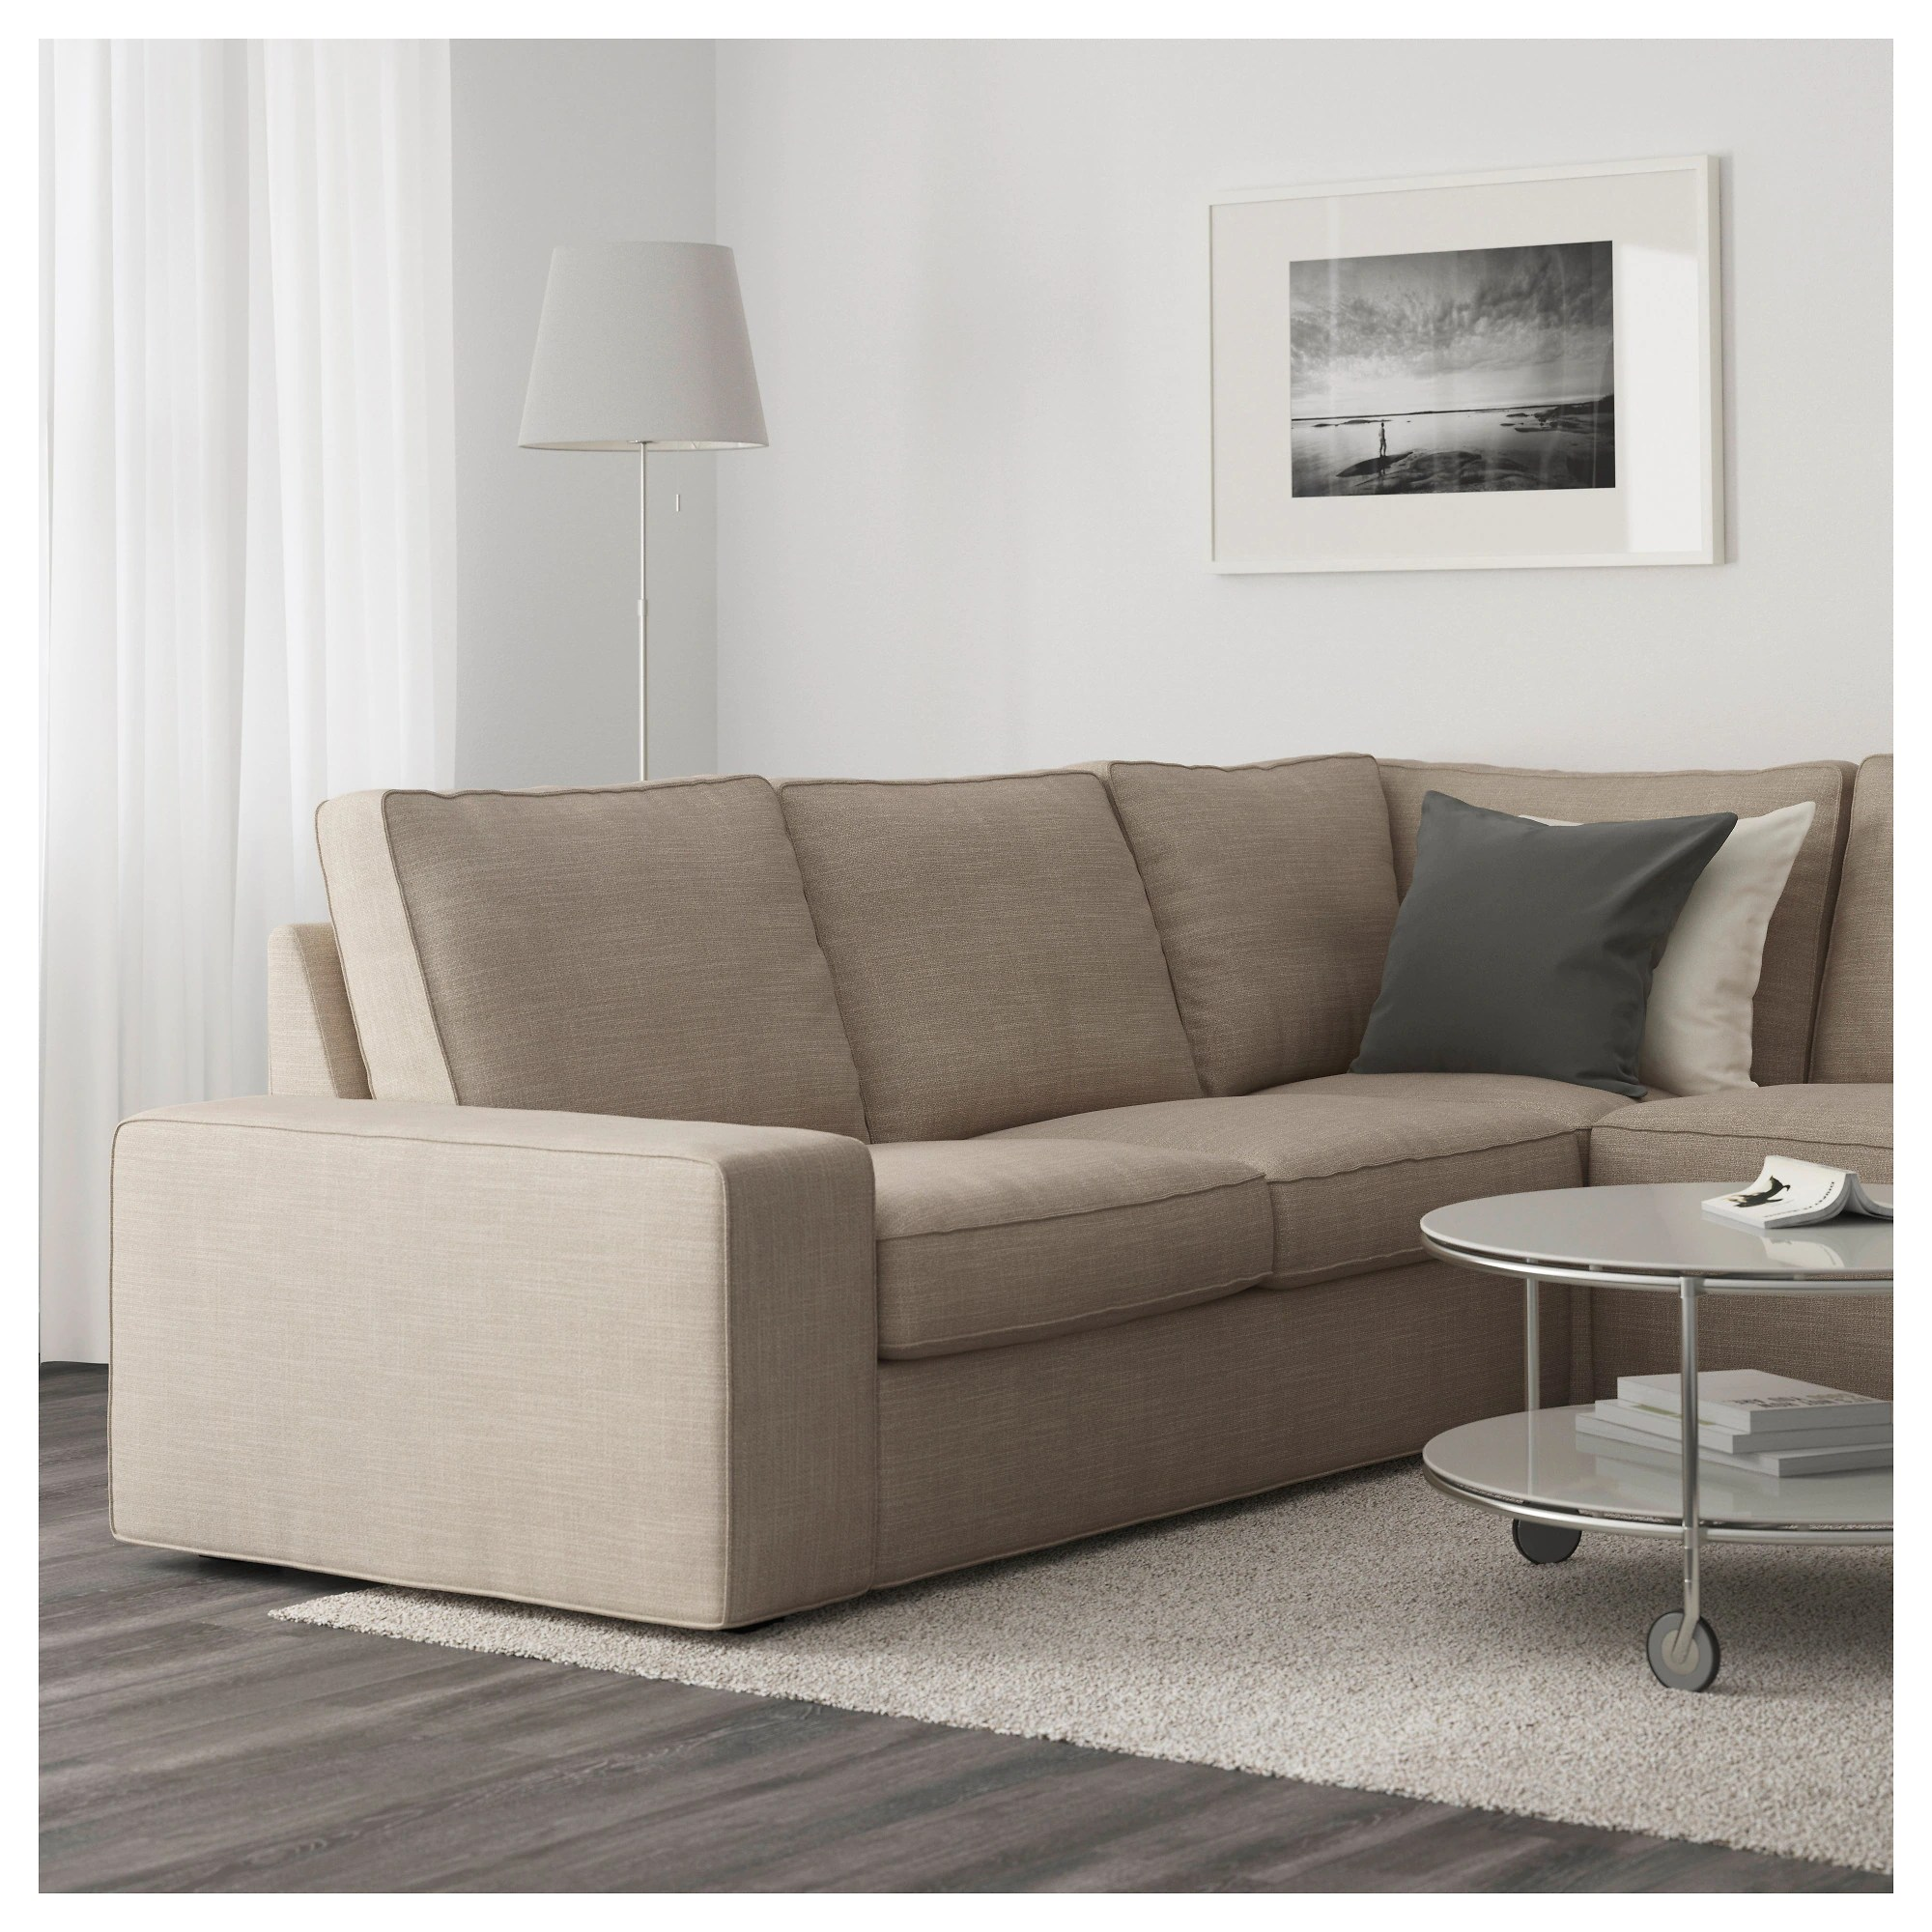 Kivik Sectional Kivik Sectional 5 Seat Corner Hillared With Chaise Hillared Dark Blue